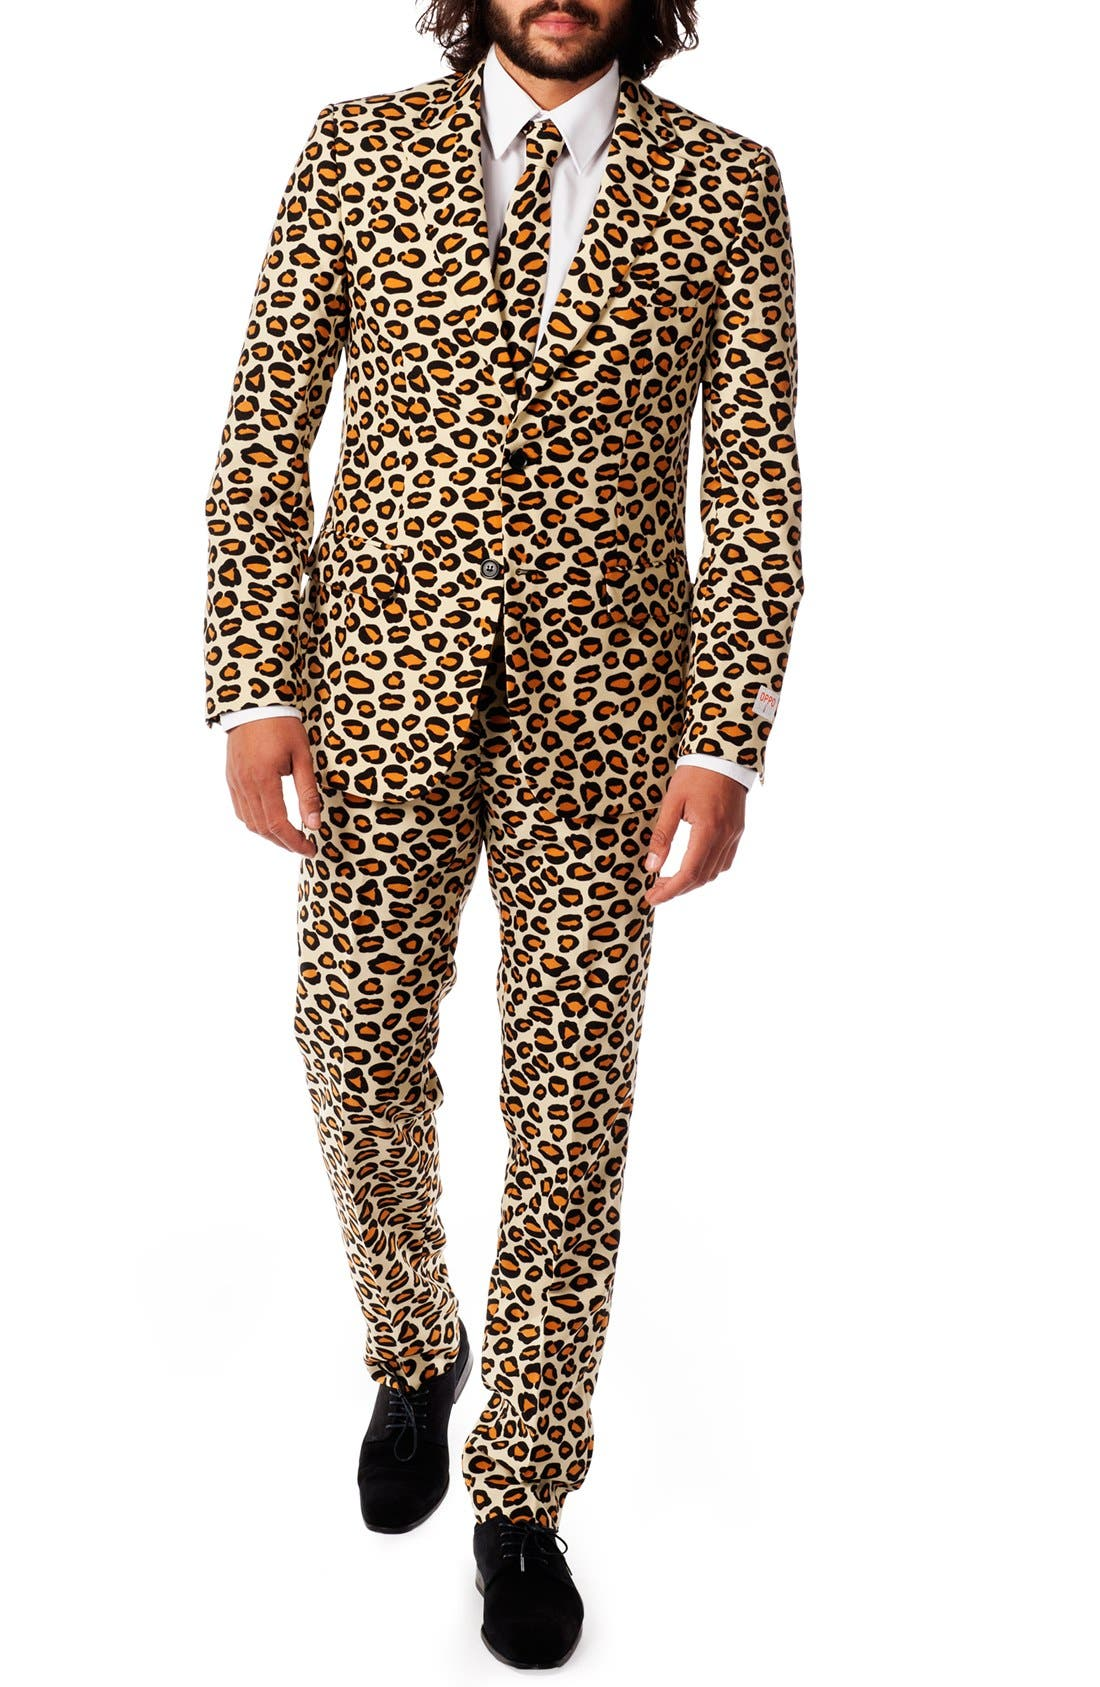 Main Image - OppoSuits 'The Jag' Trim Fit Two-Piece Suit with Tie